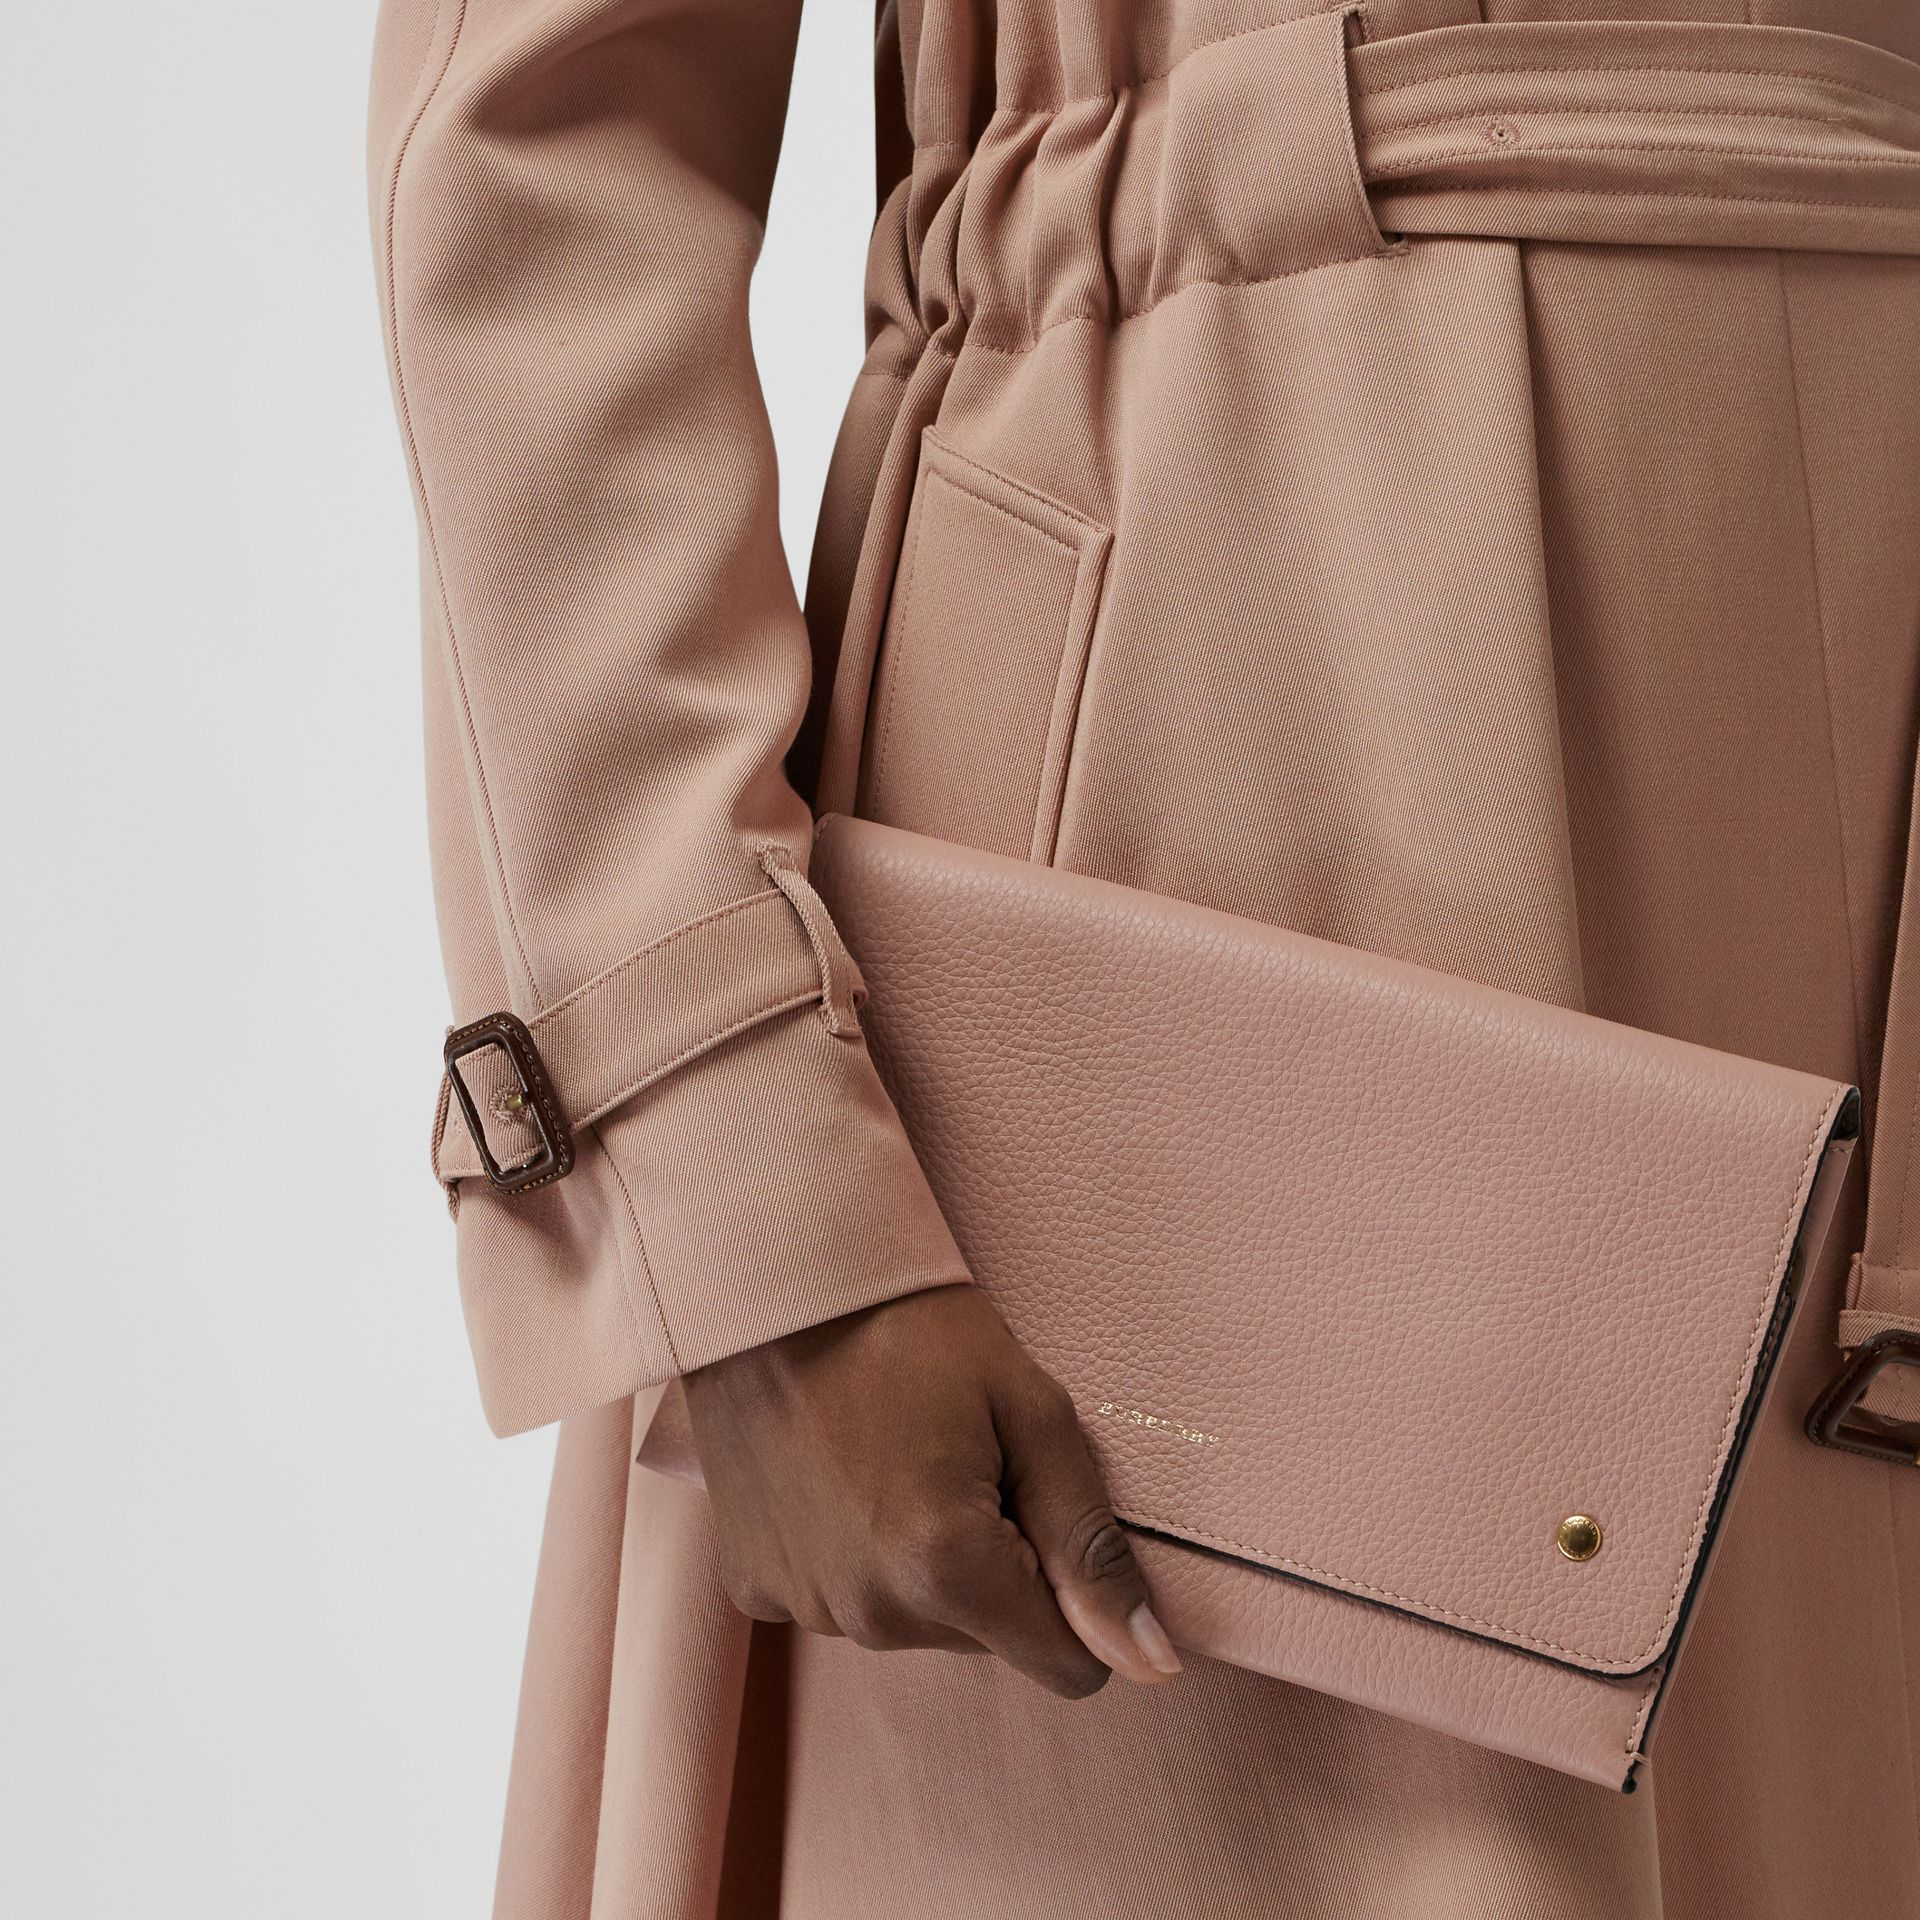 Two-tone Leather Wristlet Clutch in Ash Rose - Women | Burberry Canada - gallery image 3